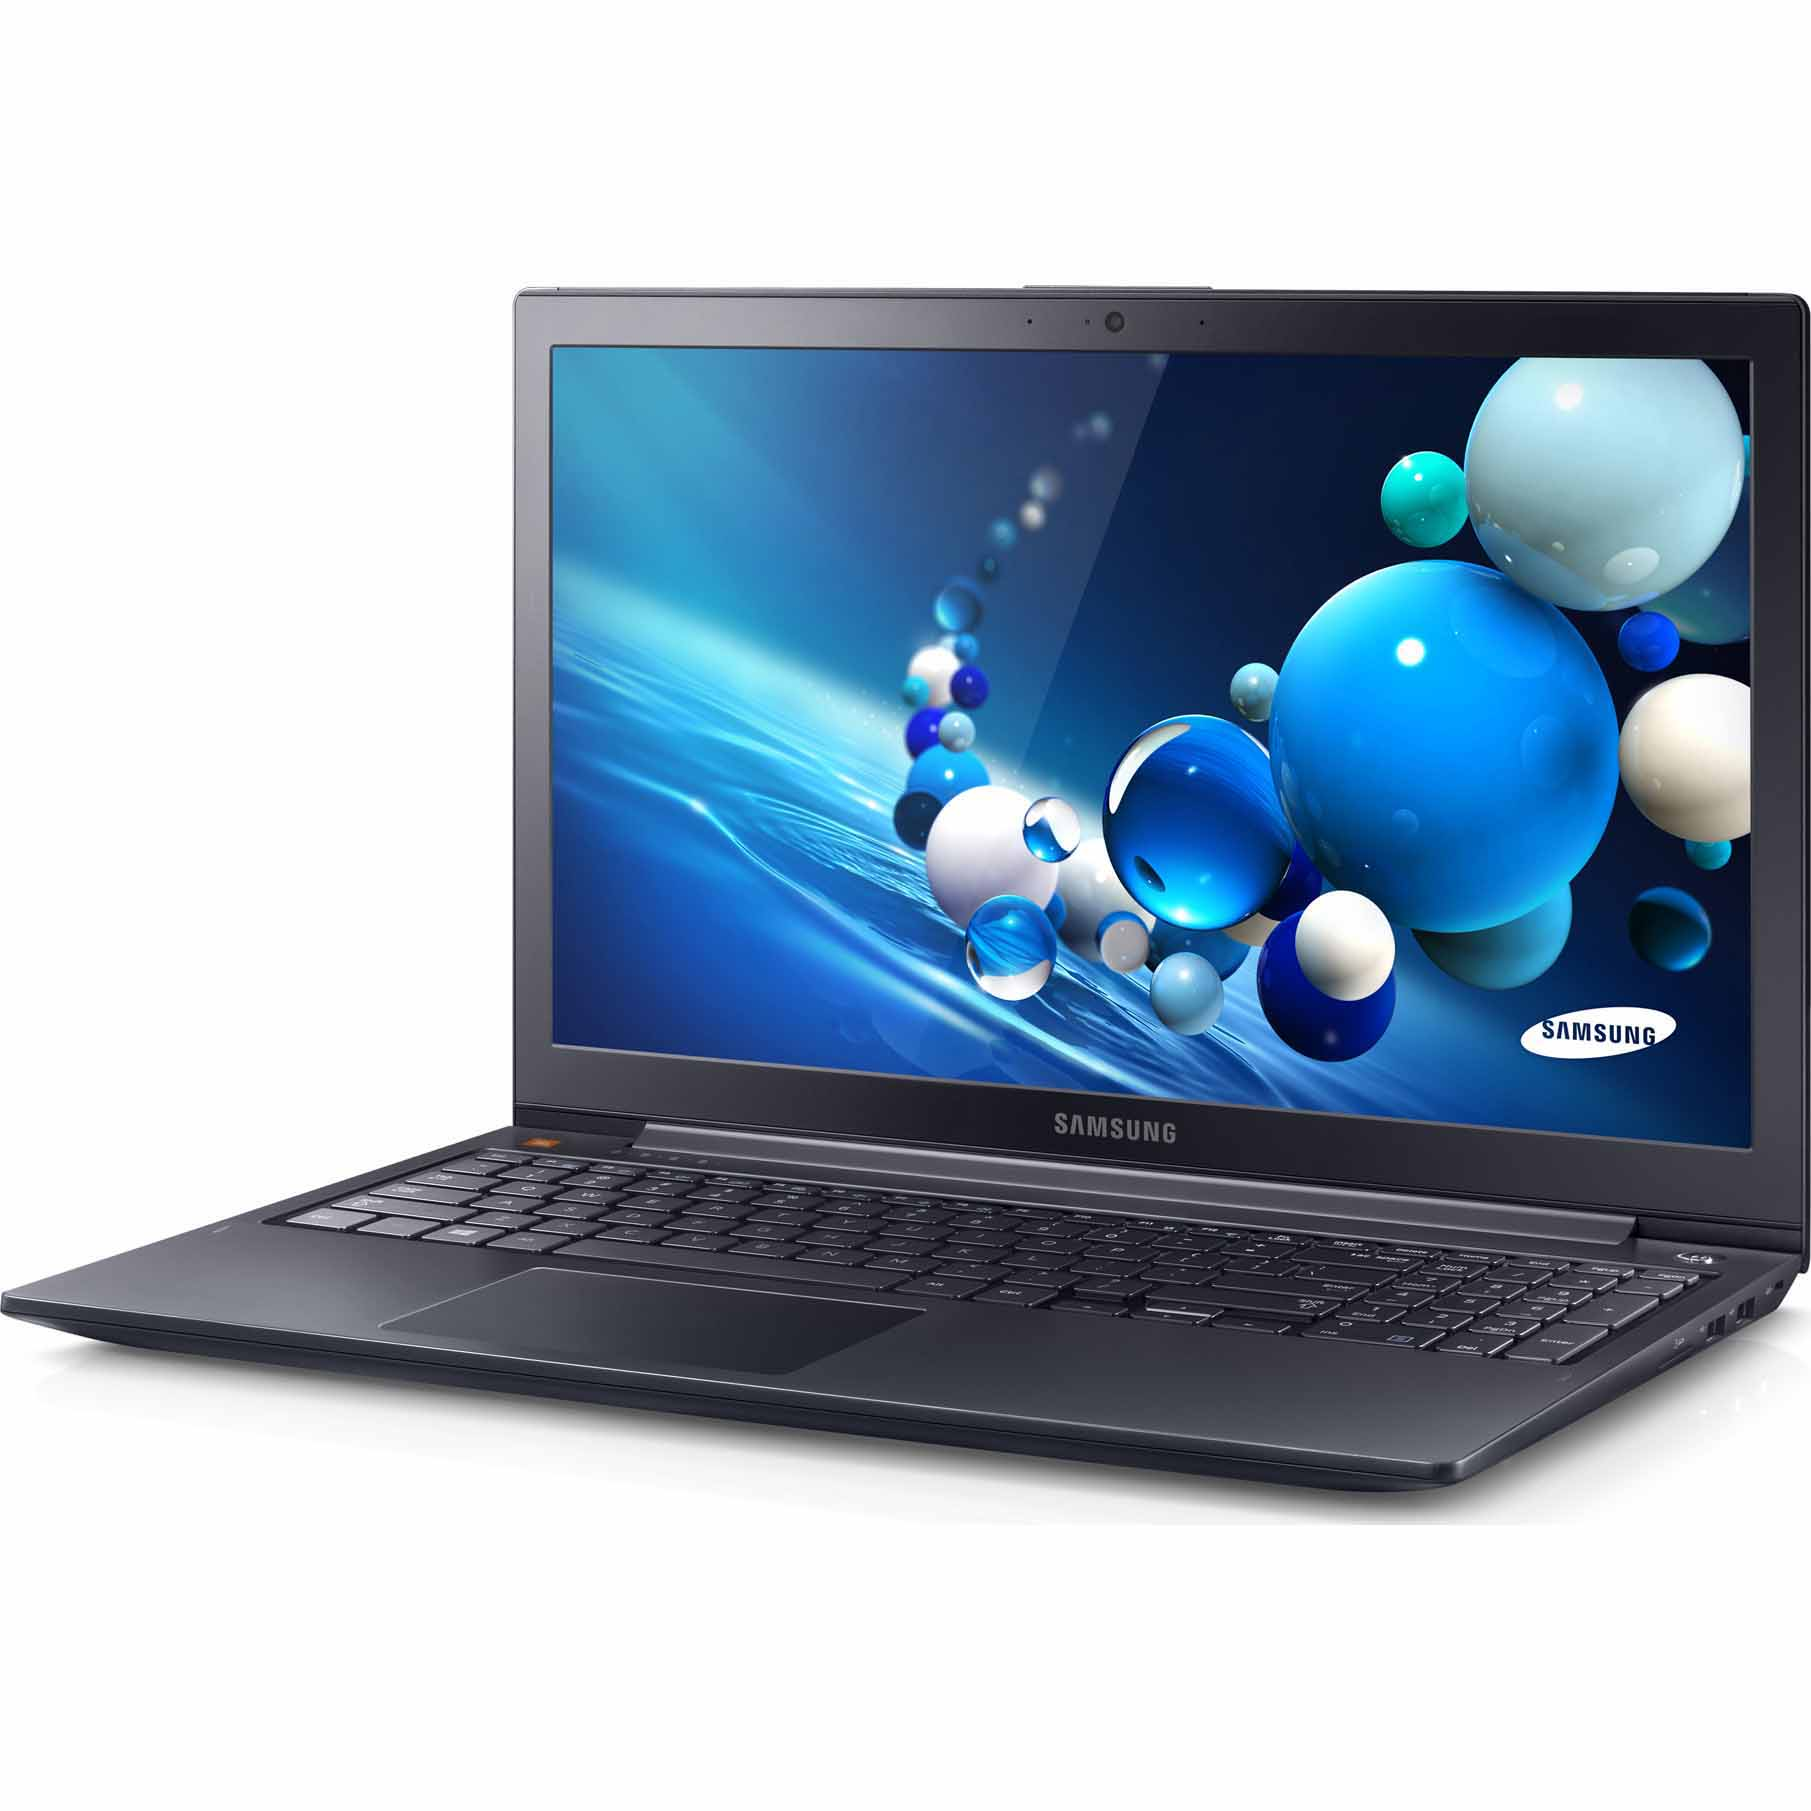 """Samsung Ativ Book 6 15.6"""" Laptop w/ Touch Screen"""